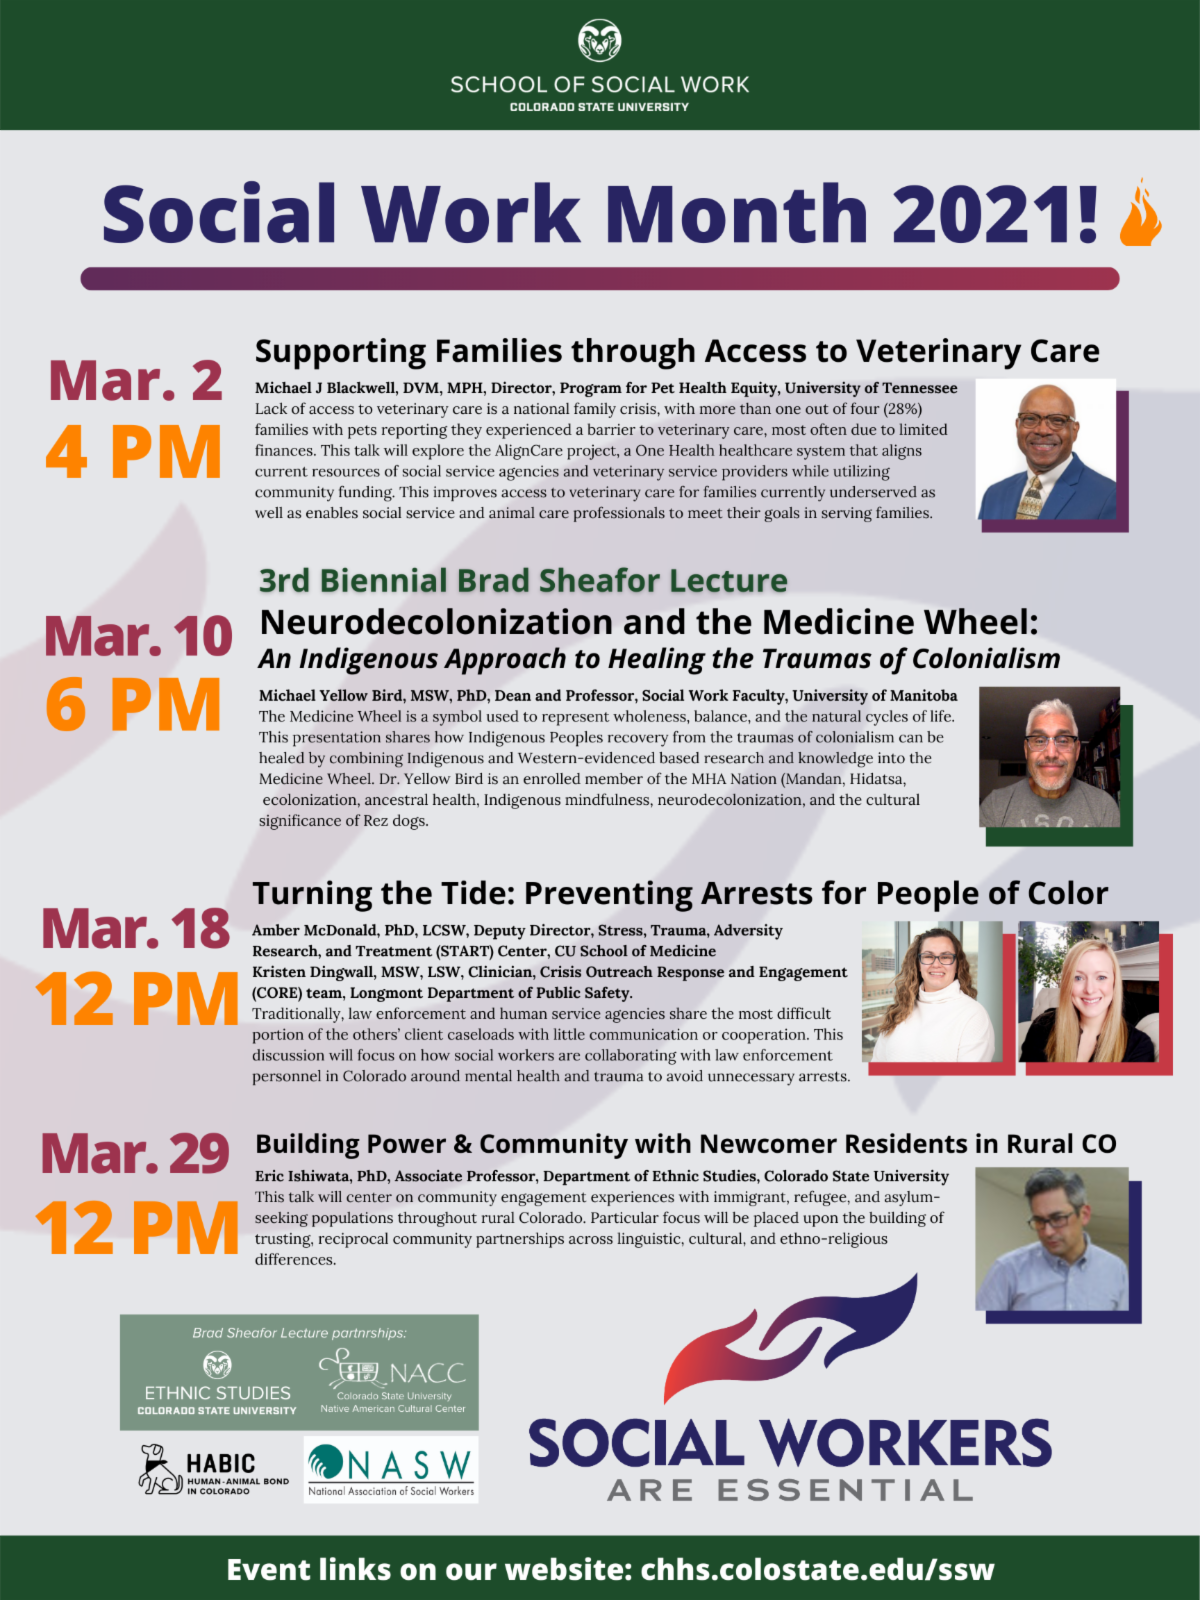 Social work month 2021. Follow the image link for more information